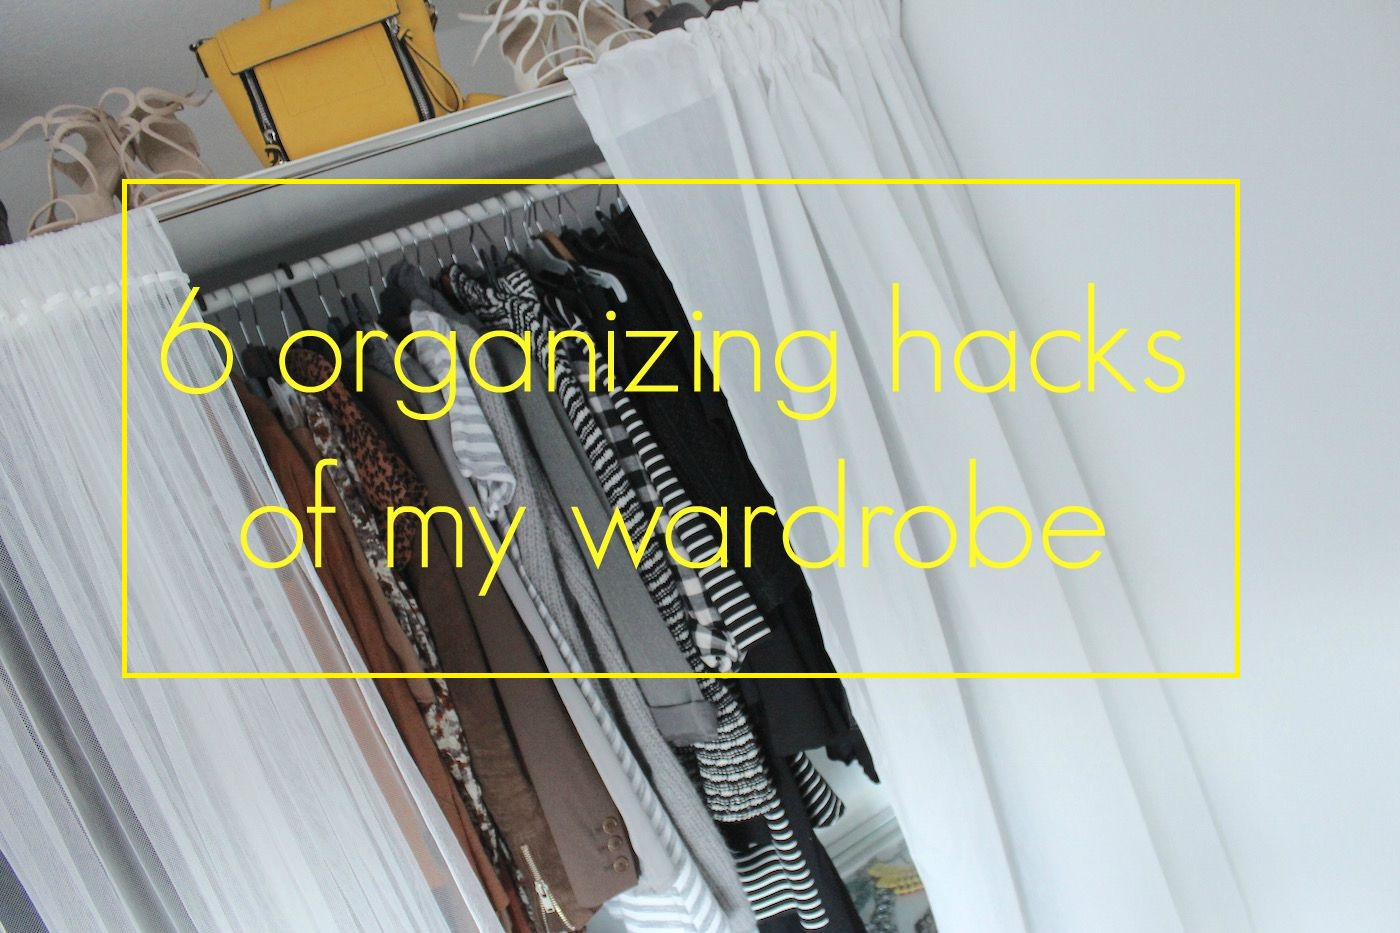 Interior] 6 organizing hacks of my wardrobe